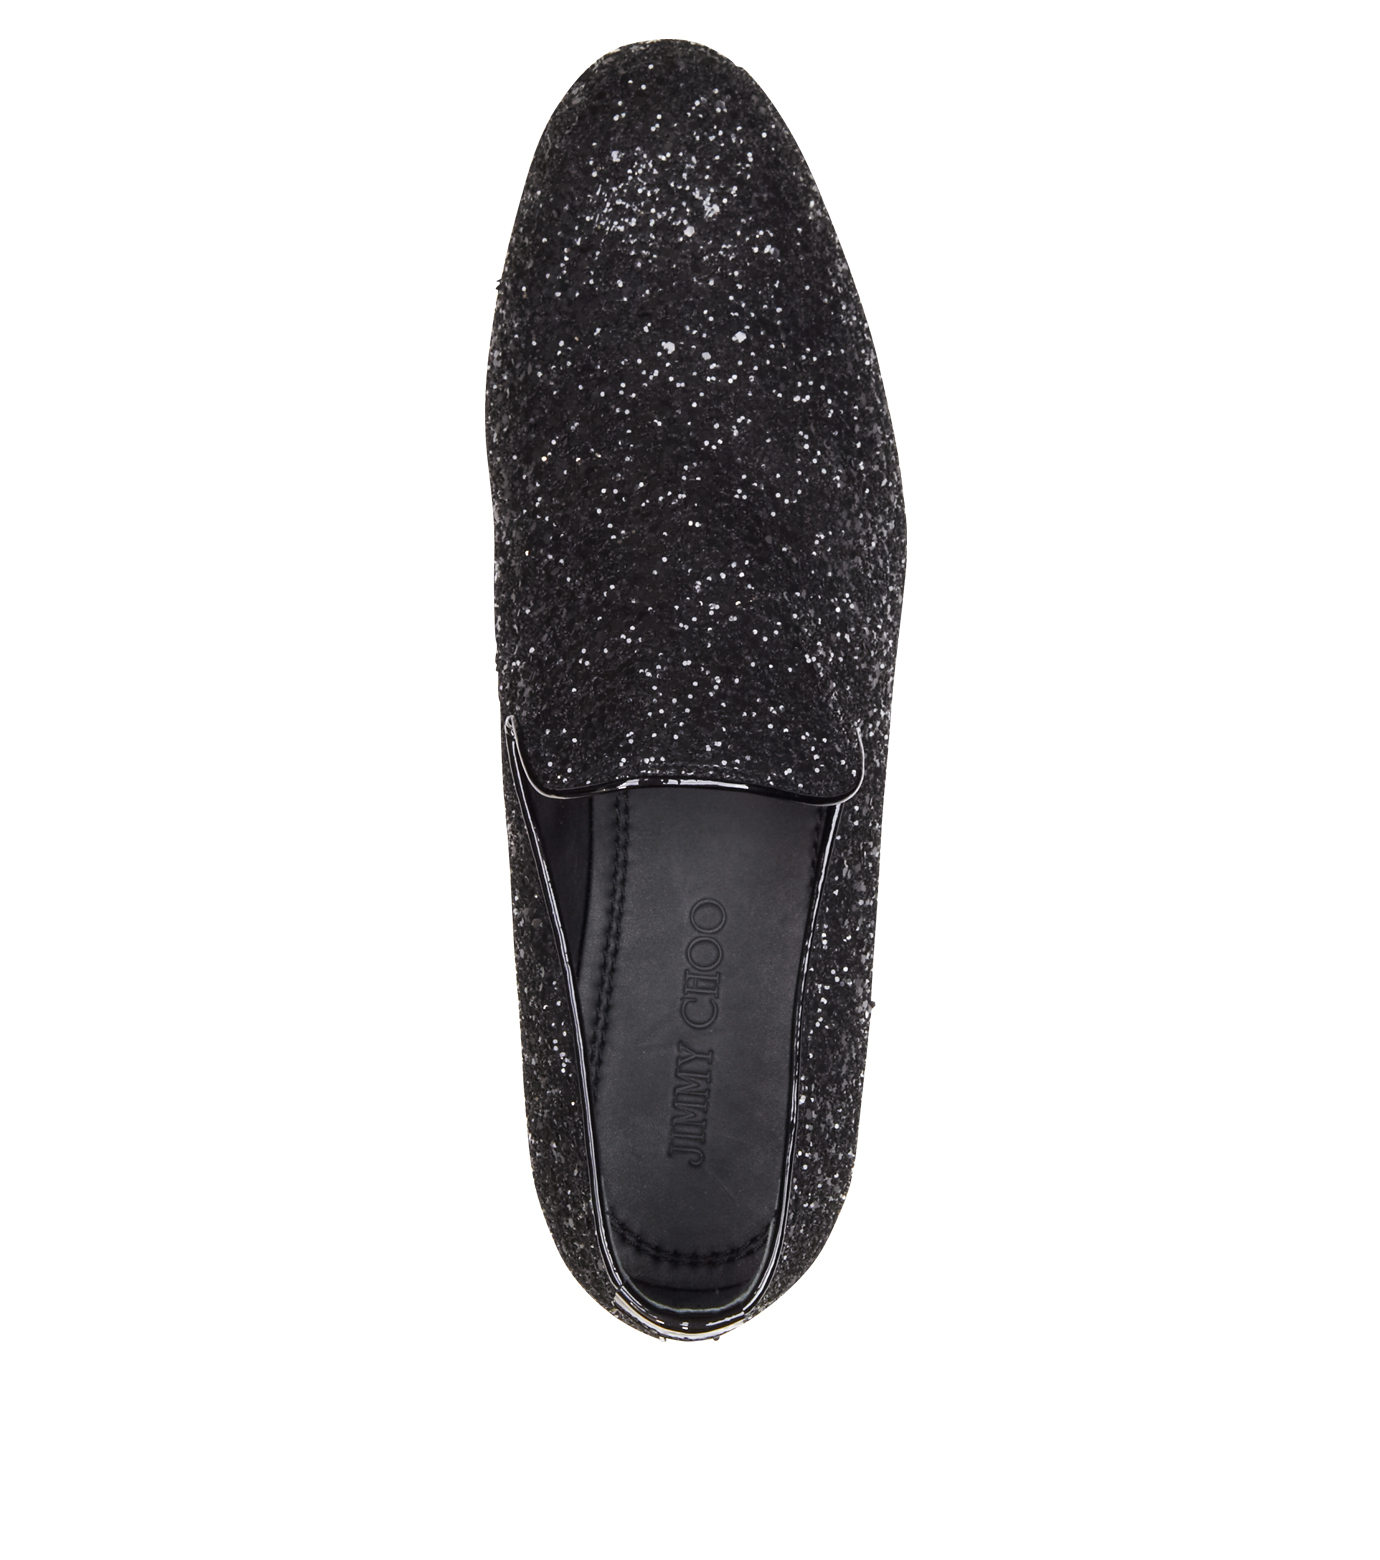 Jimmy Choo(ジミーチュウ)のGlitter Shoes-BLACK-SLOANE-CGF 拡大詳細画像4